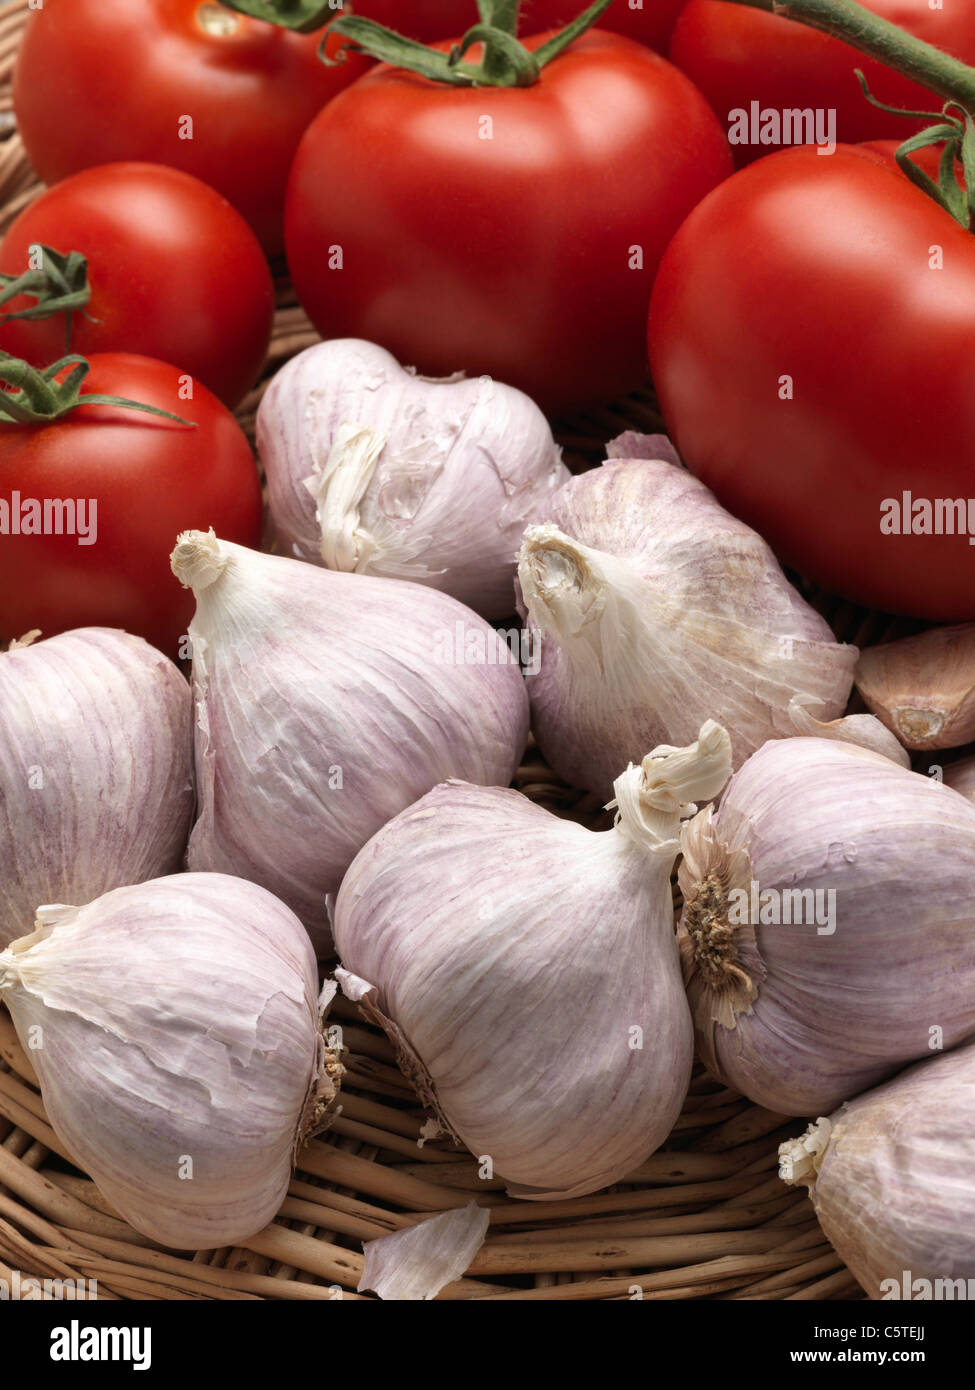 A wicker basket of garlic and ripe red tomatoes - Stock Image